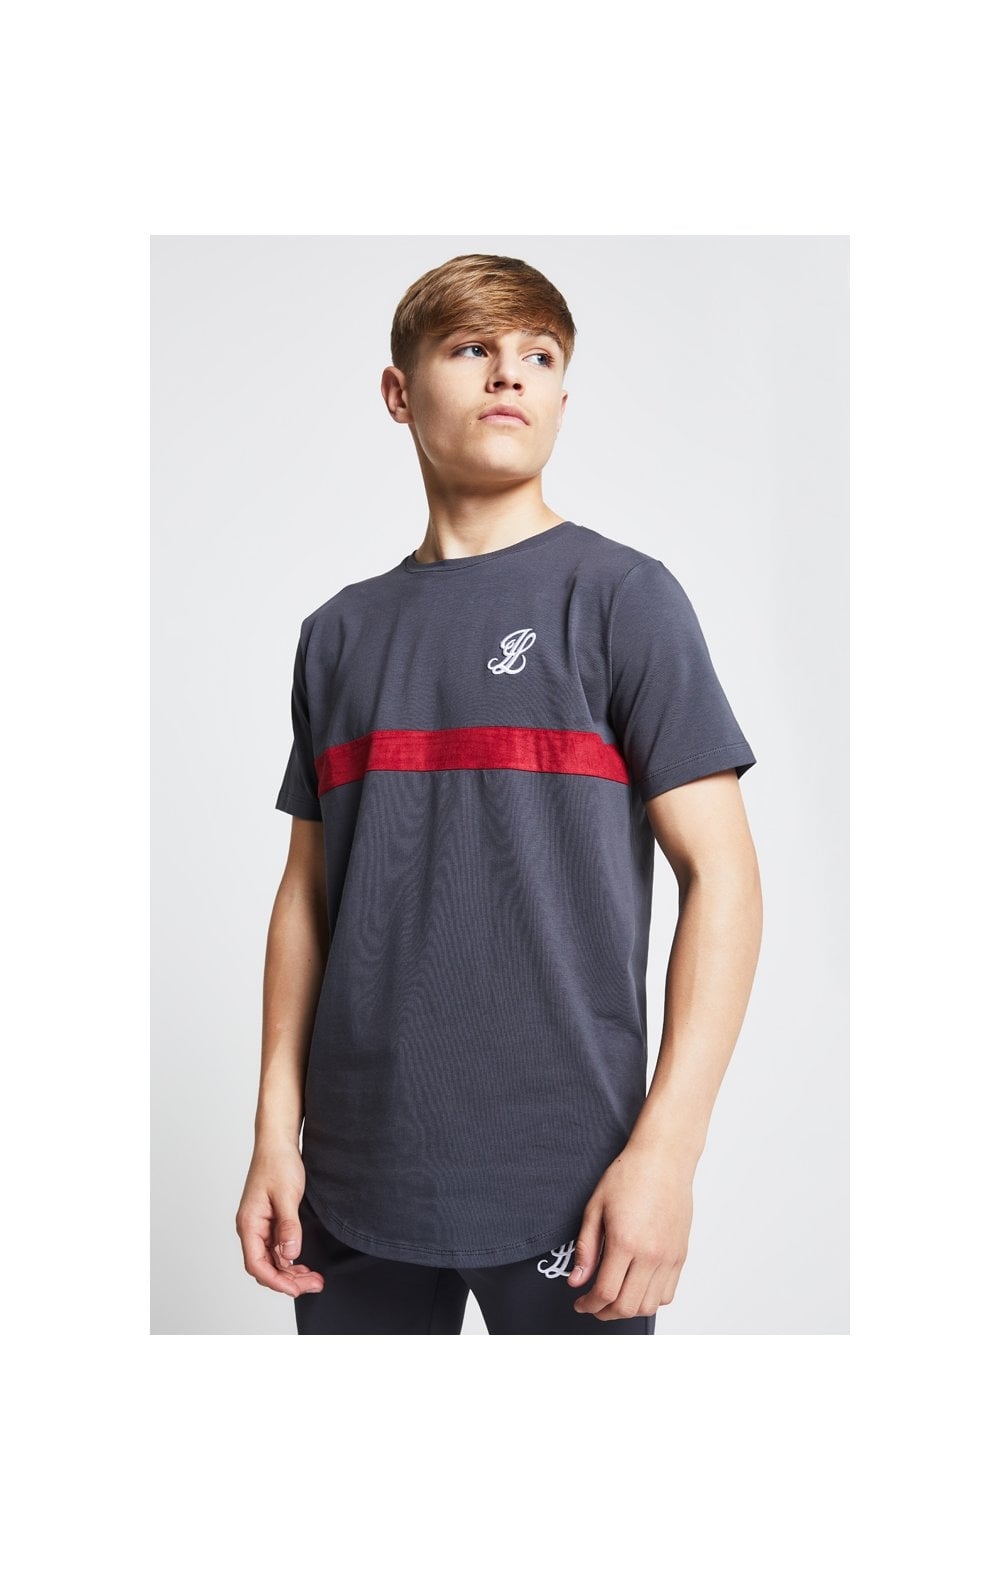 Illusive London Contrast Cut & Sew Tee - Grey & Pink (1)